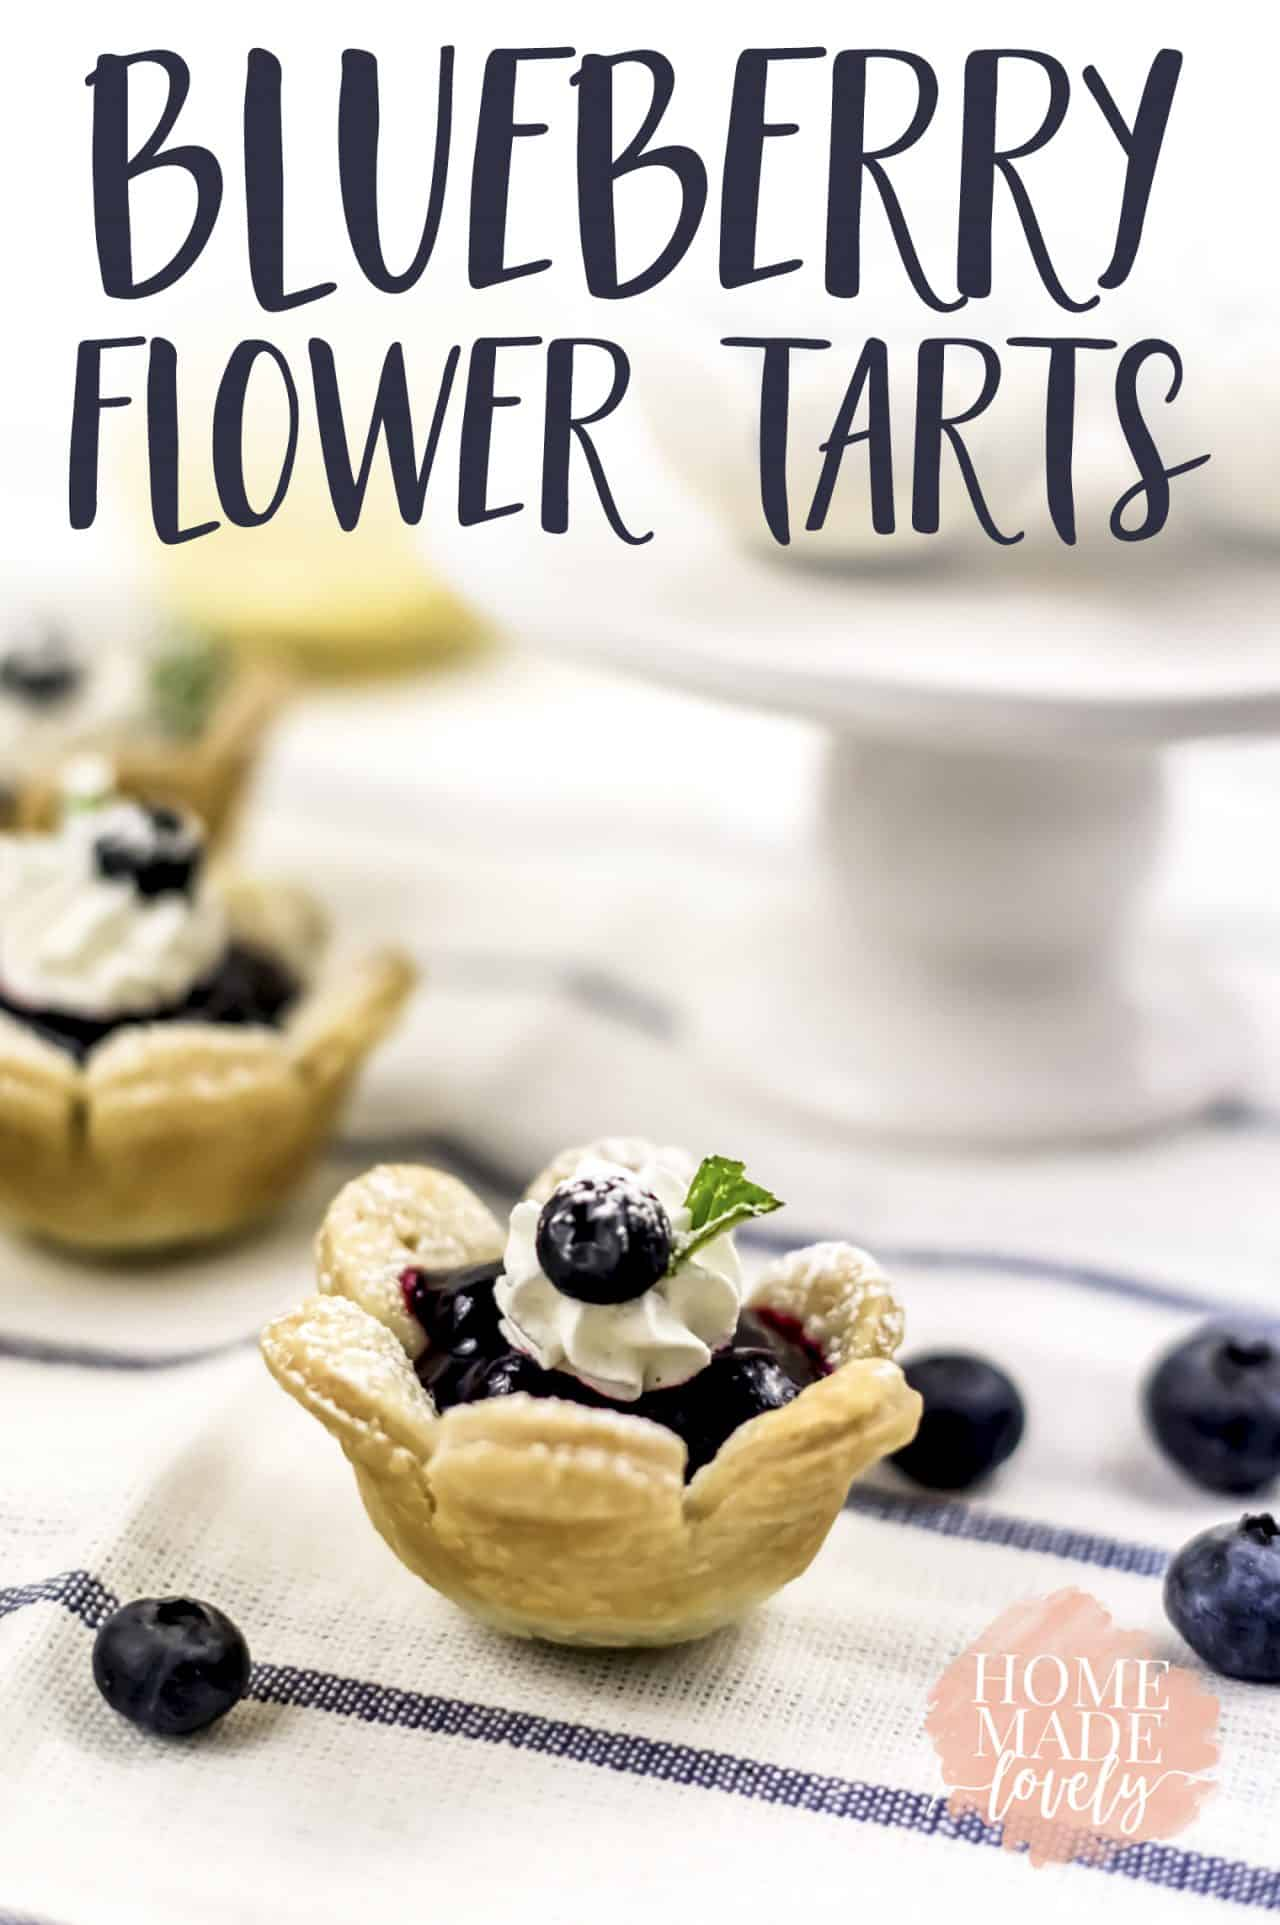 Make these cute little blueberry flower tarts with the kids or for a summer picnic! #summerrecipe #blueberrytart #recipe